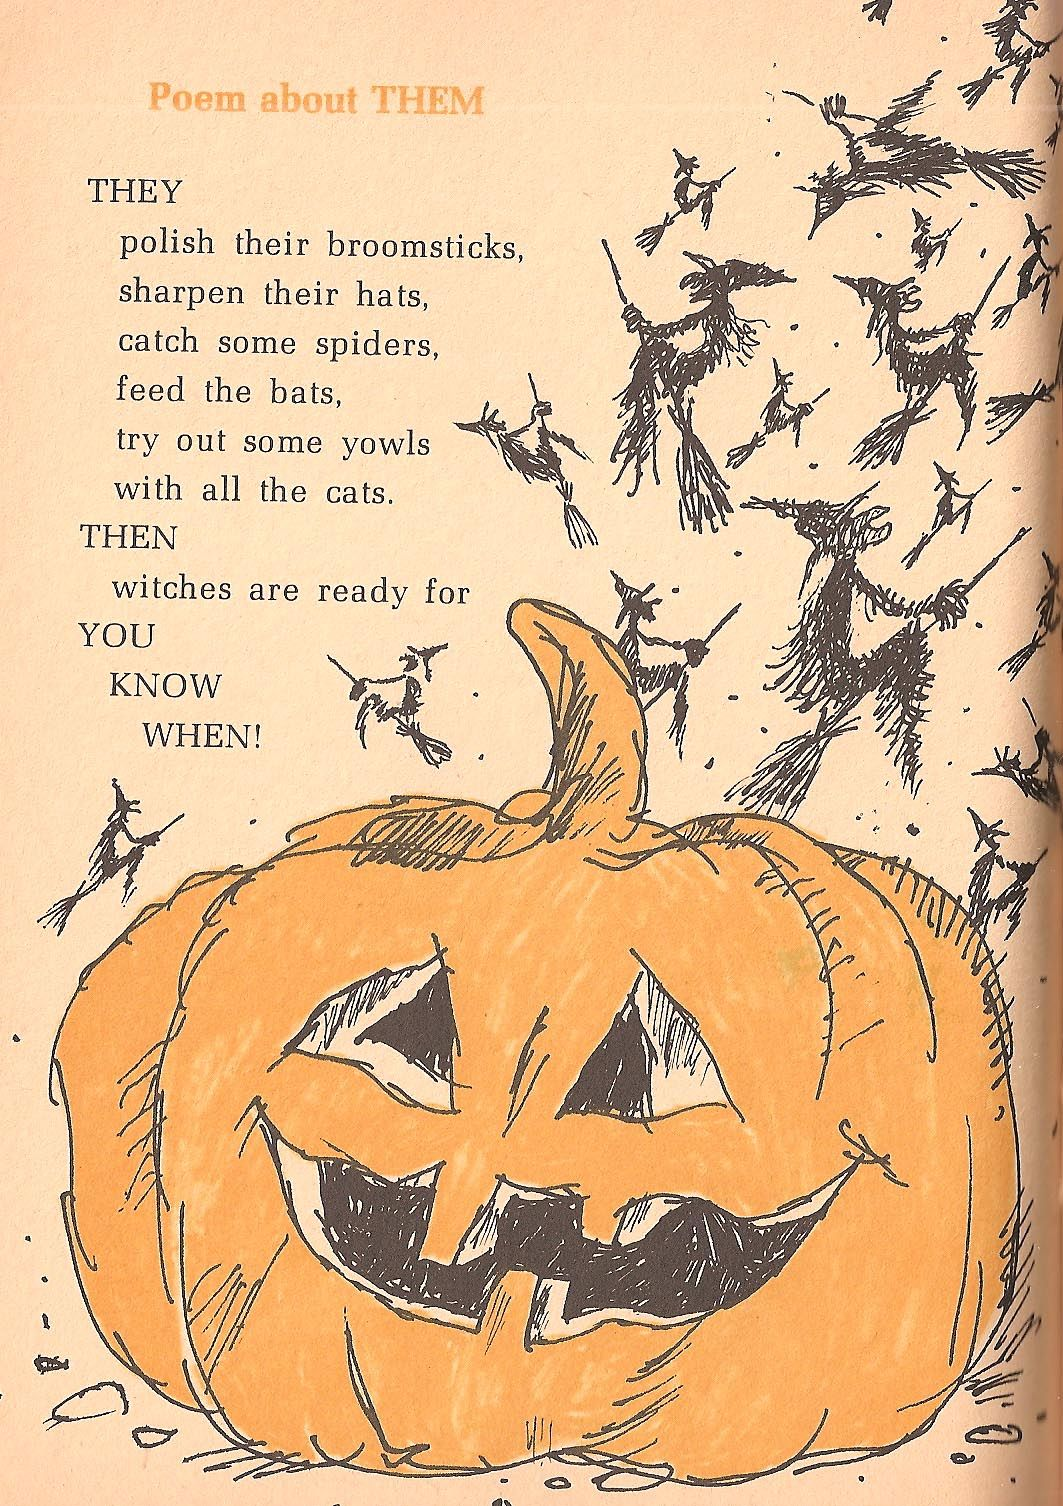 witch poems for halloween   The Haunted Closet: Spooky Rhymes and ...